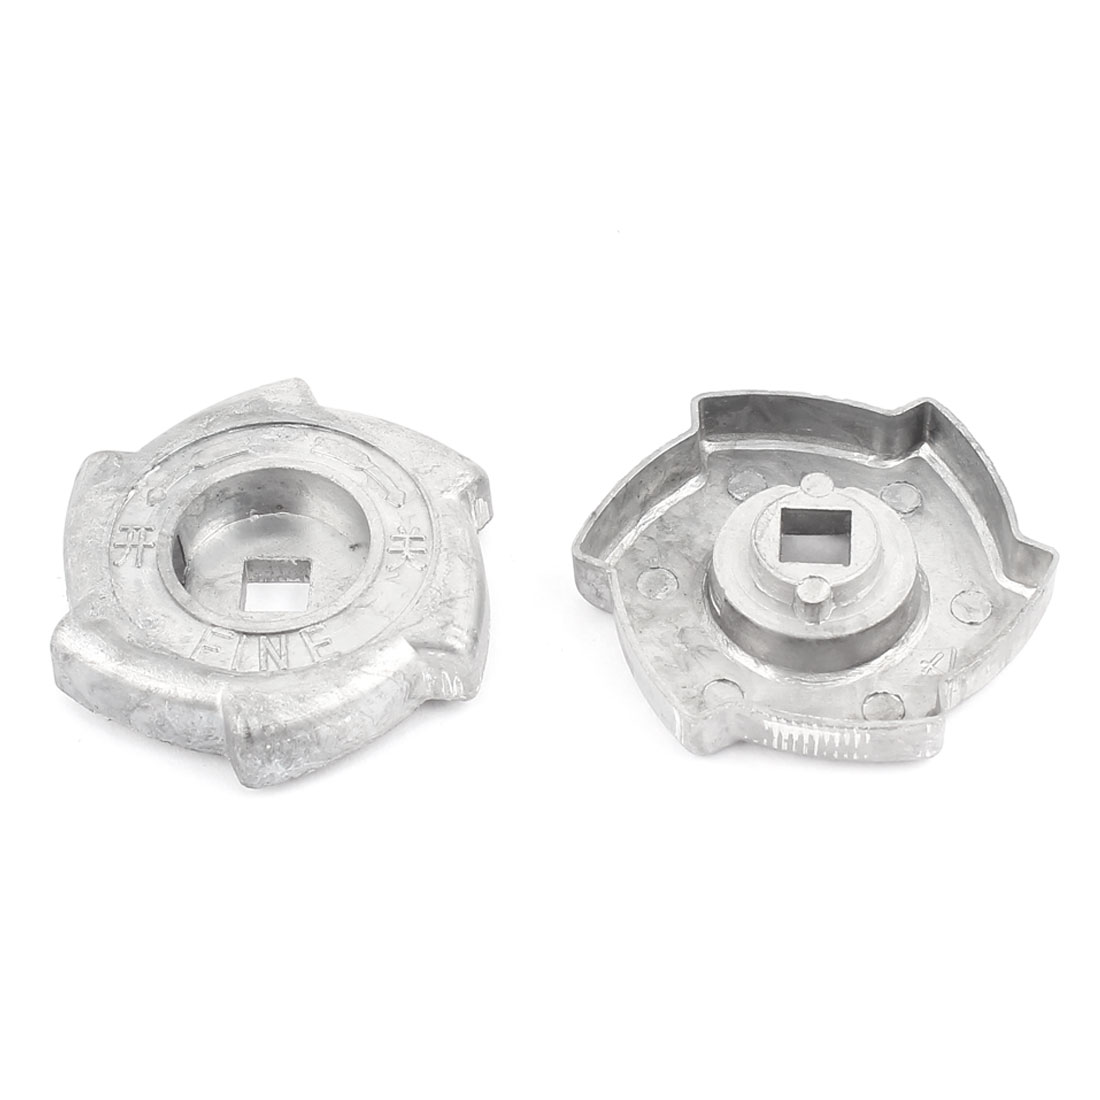 Family Handy Tool Kitchen Gas Stove Range Cooktop Alloy Rotary Switch Knob Gray 2 Pcs